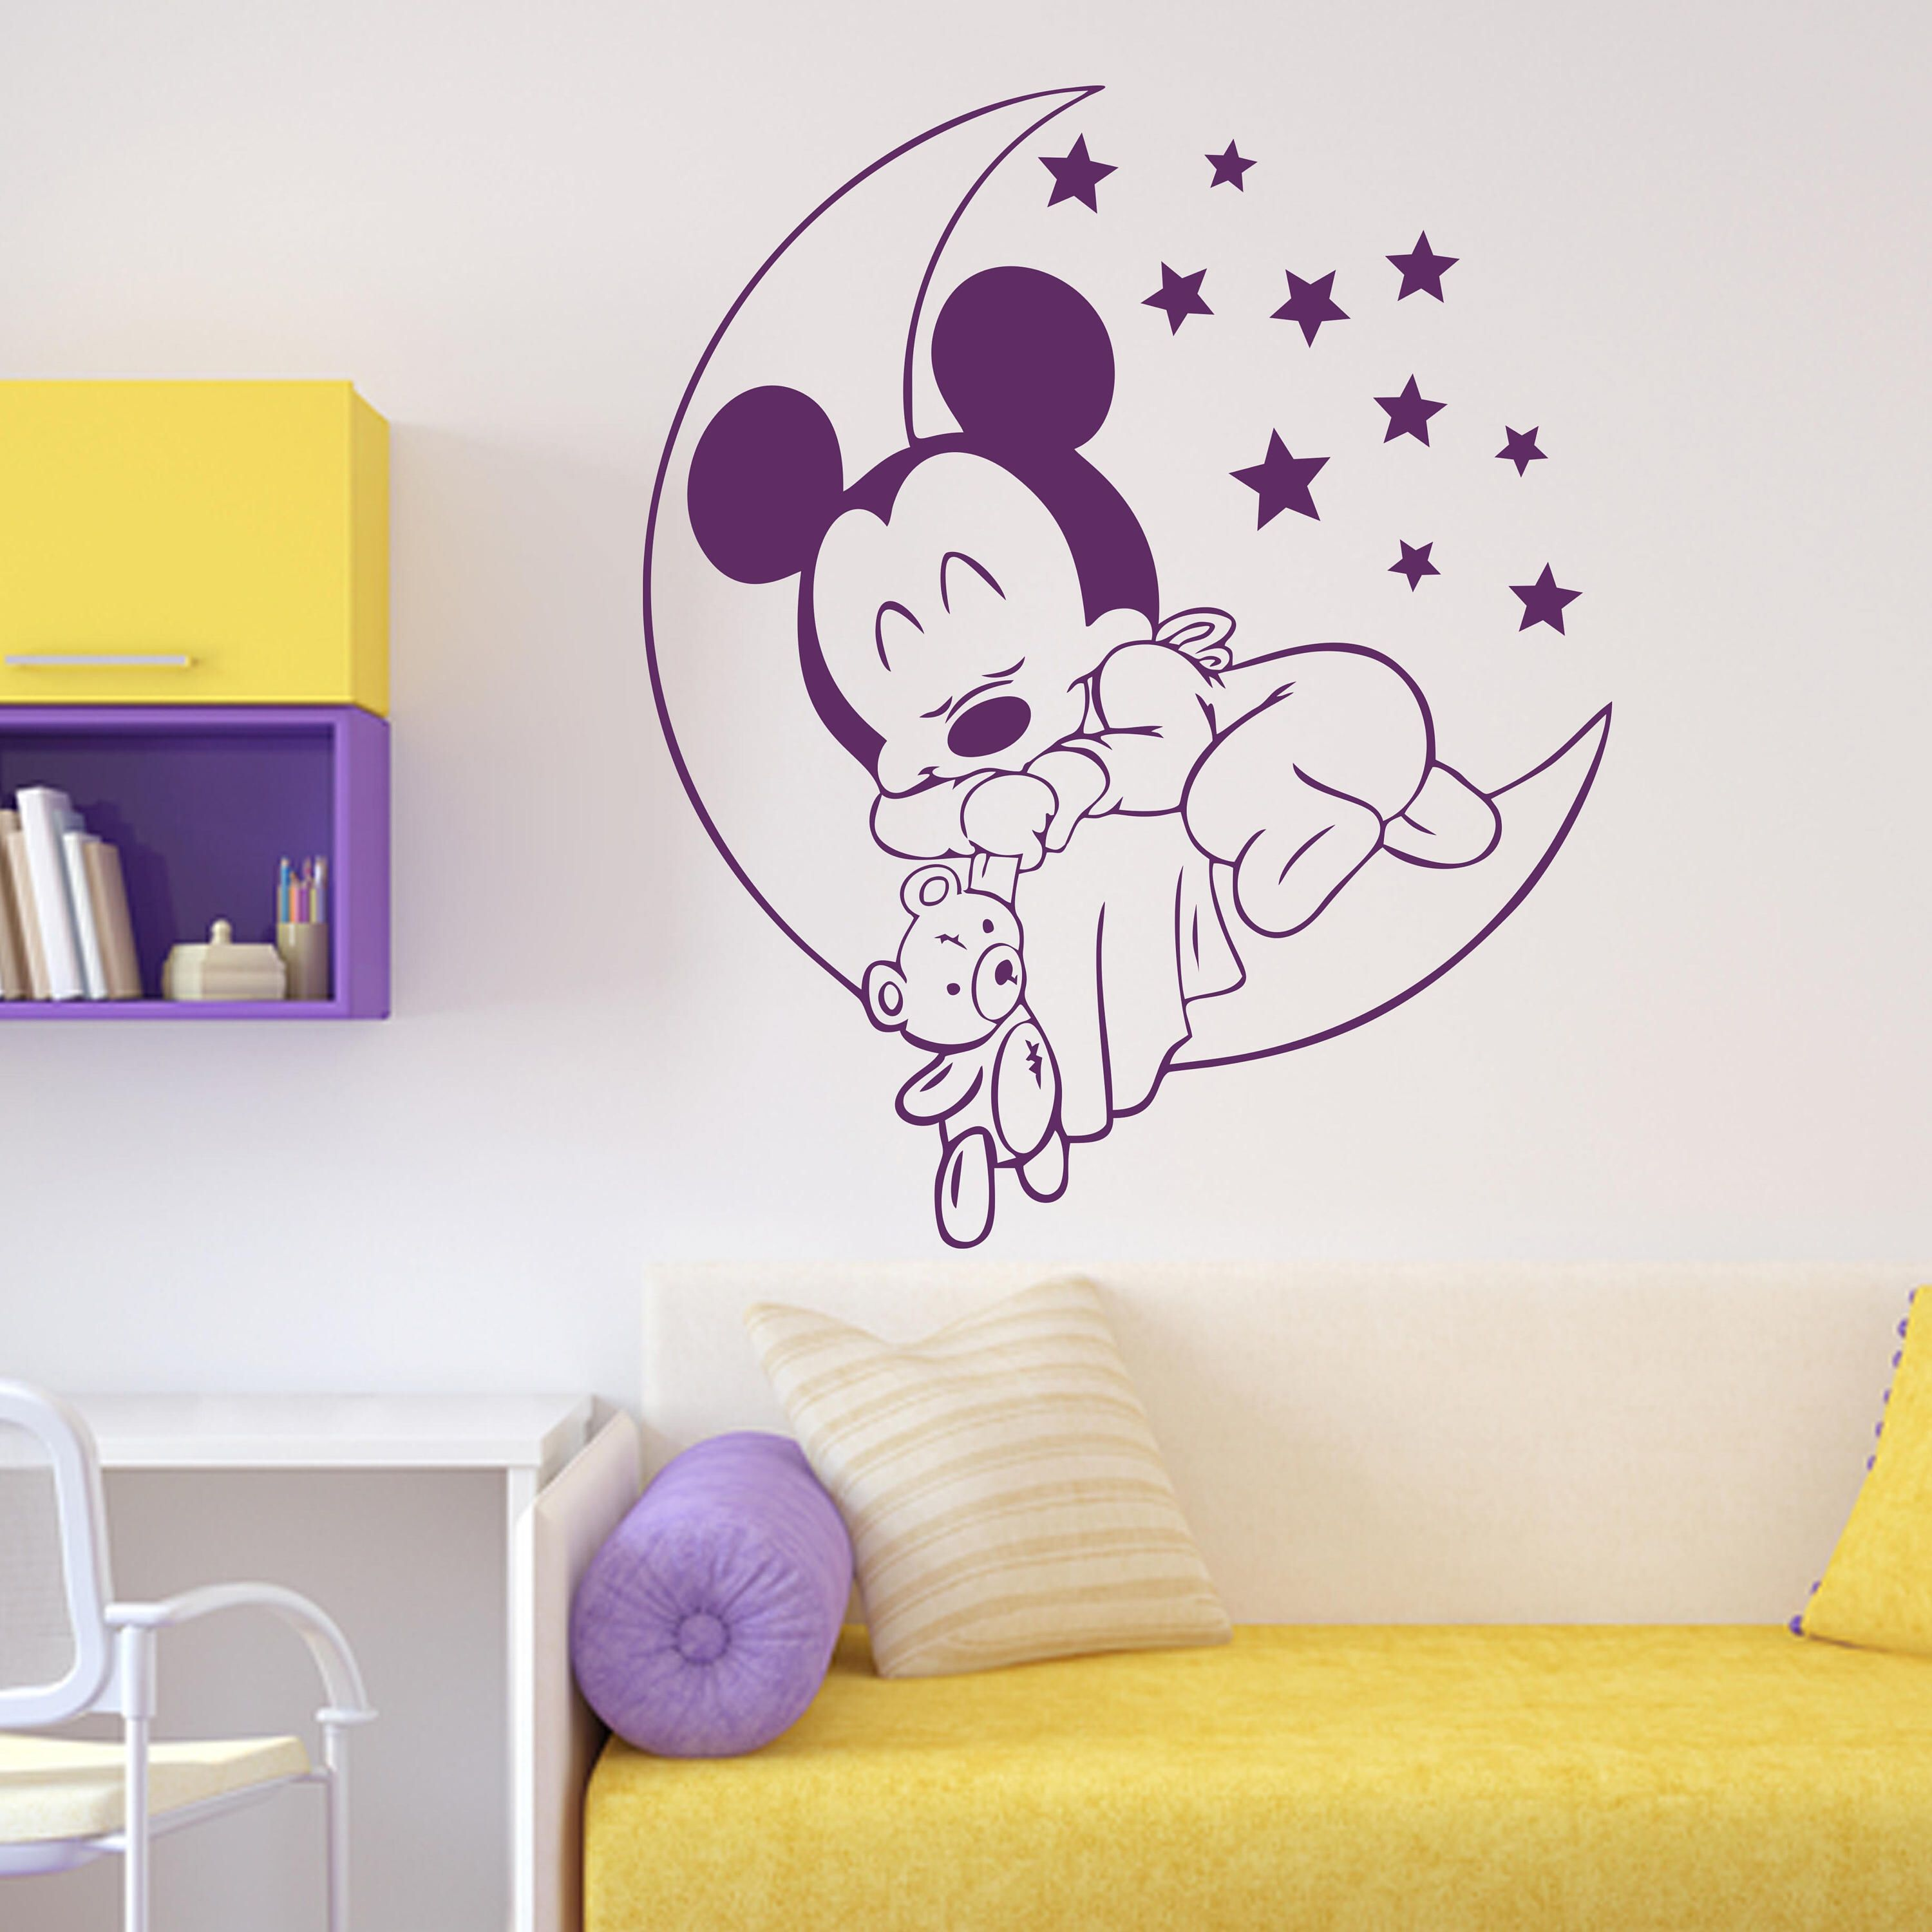 Mickey Mouse Baby Wall Decal Moon Stars Walt Disney Boy Vinyl Sticker Home  Playroom Bedroom Decor Part 82